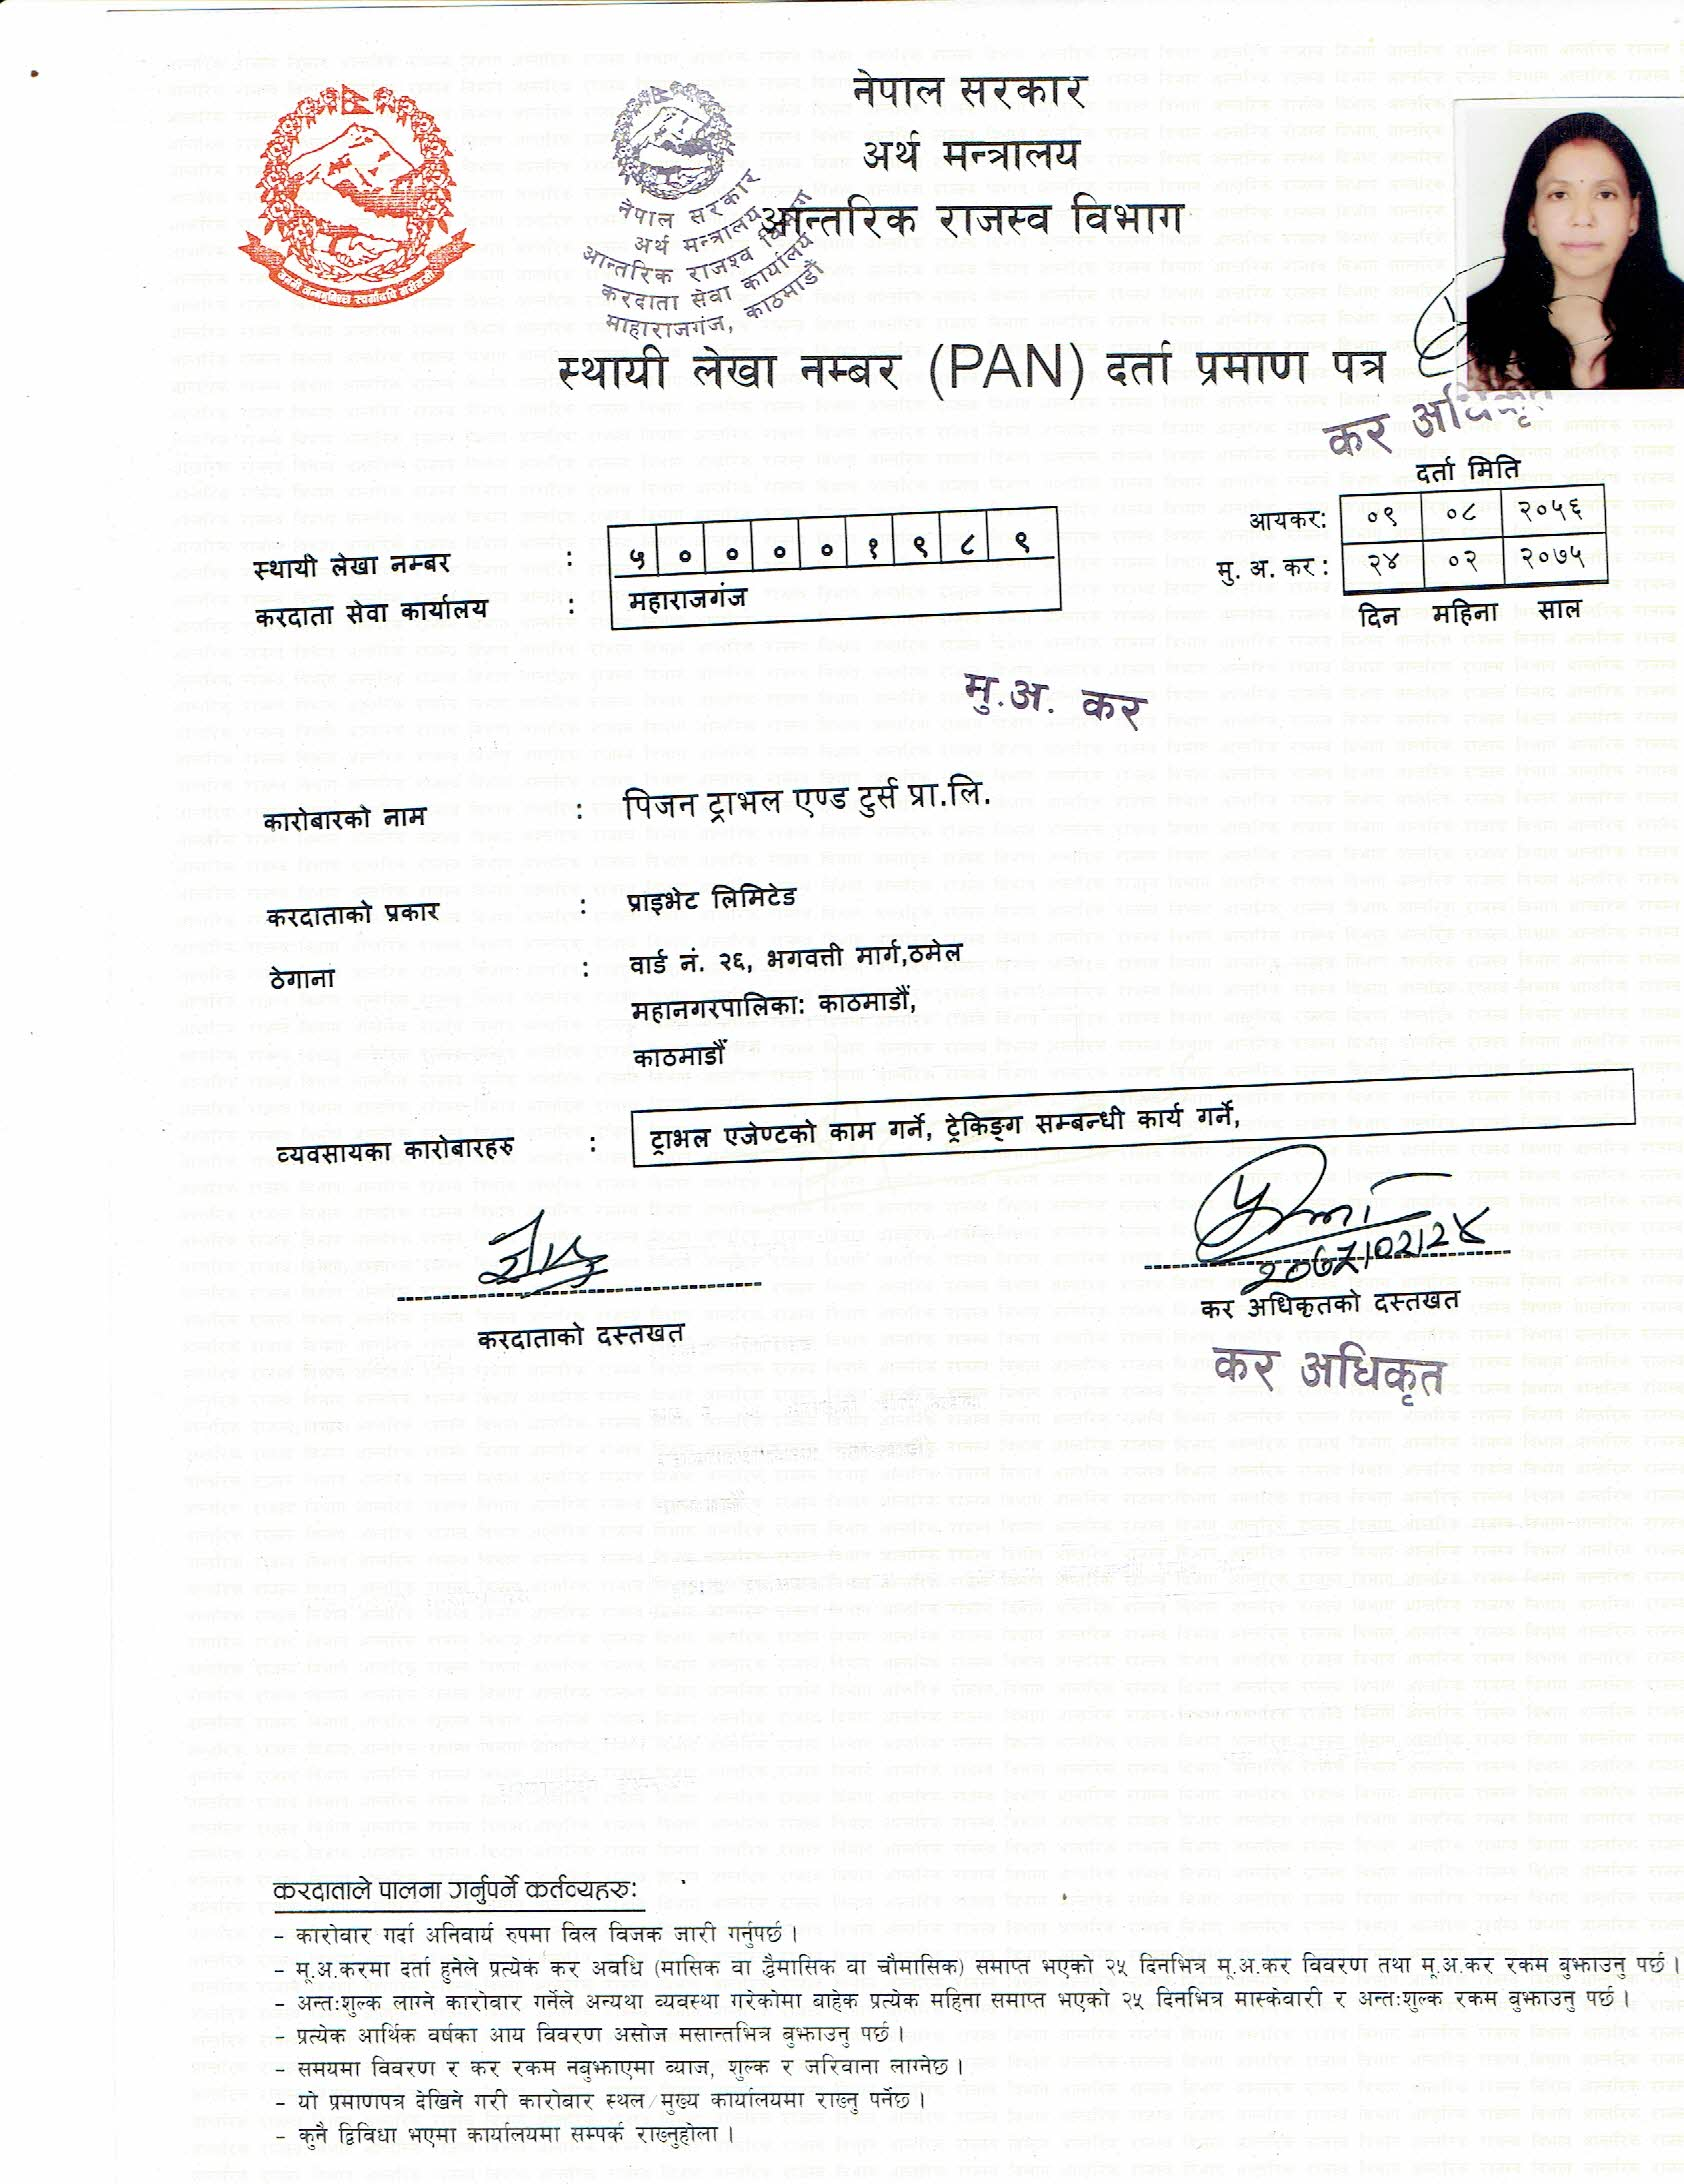 Tax/VAT Registration Certificate,Department of Tax